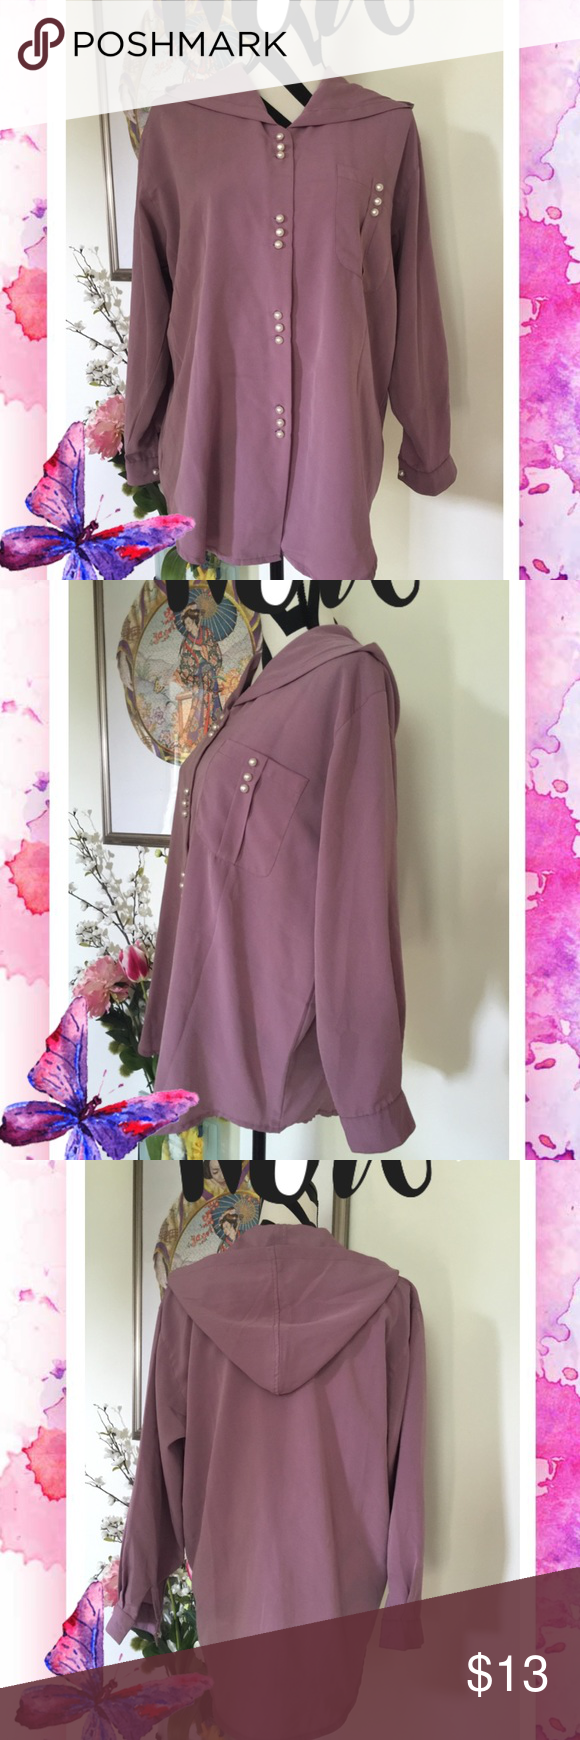 "Lavender Pearl Button Hoodie Style Shirt Big sale on bundles 2 items 30% off  3 items 40% off  5 items 50% off  Lavender Pearl Button Hoodie Style Shirt   100% polyester   Size L Shoulder: 38"" Bust: 44"" Sleeve: 20"" Length: 29""  Excellent condition Tops Button Down Shirts"